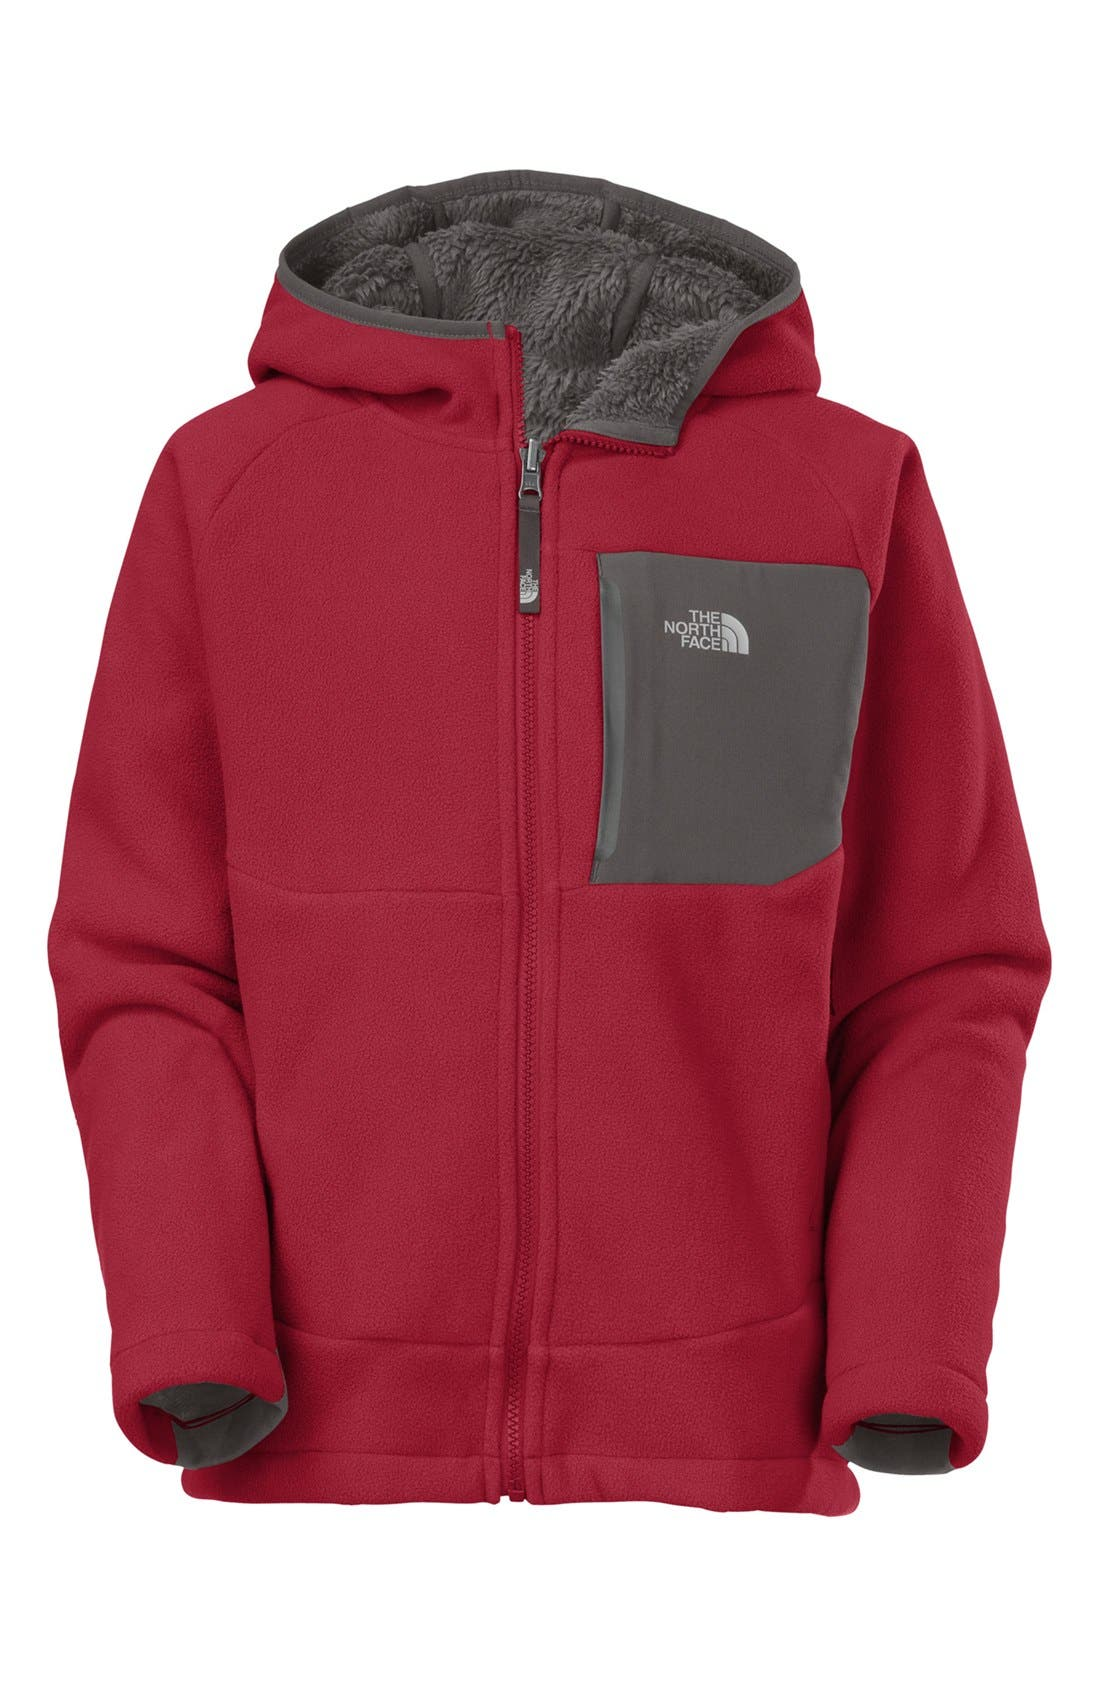 Alternate Image 1 Selected - The North Face 'Chimborazo' Hoodie (Big Boys)